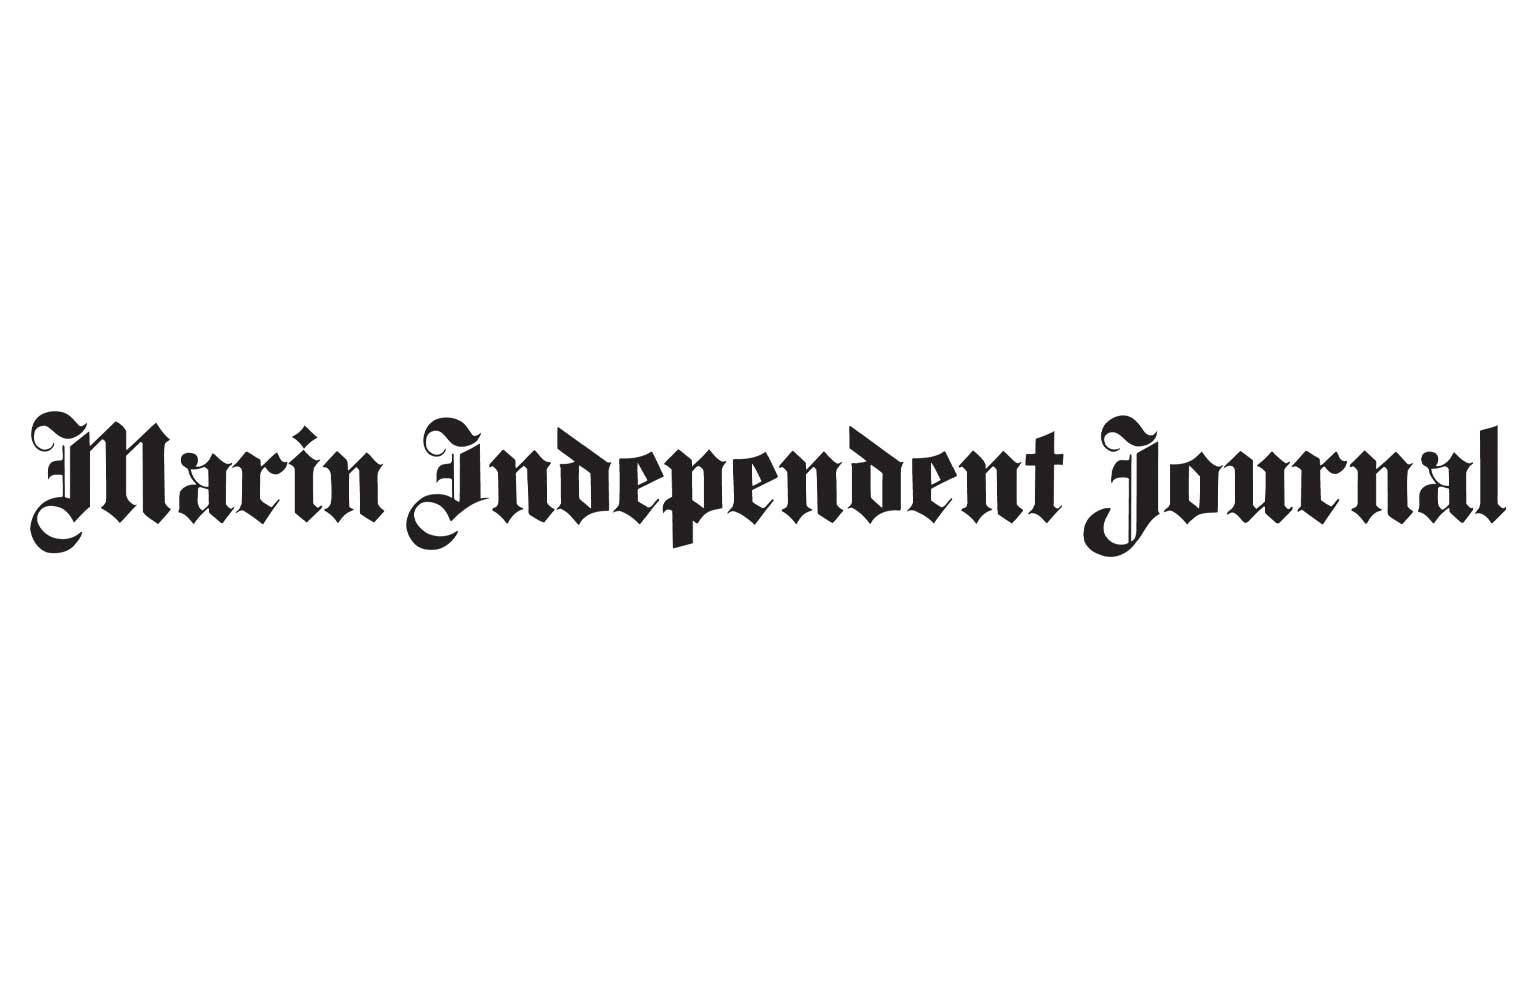 Governor: Do your part to push vaccinations for all – Marin Independent Journal, 6/15/2019